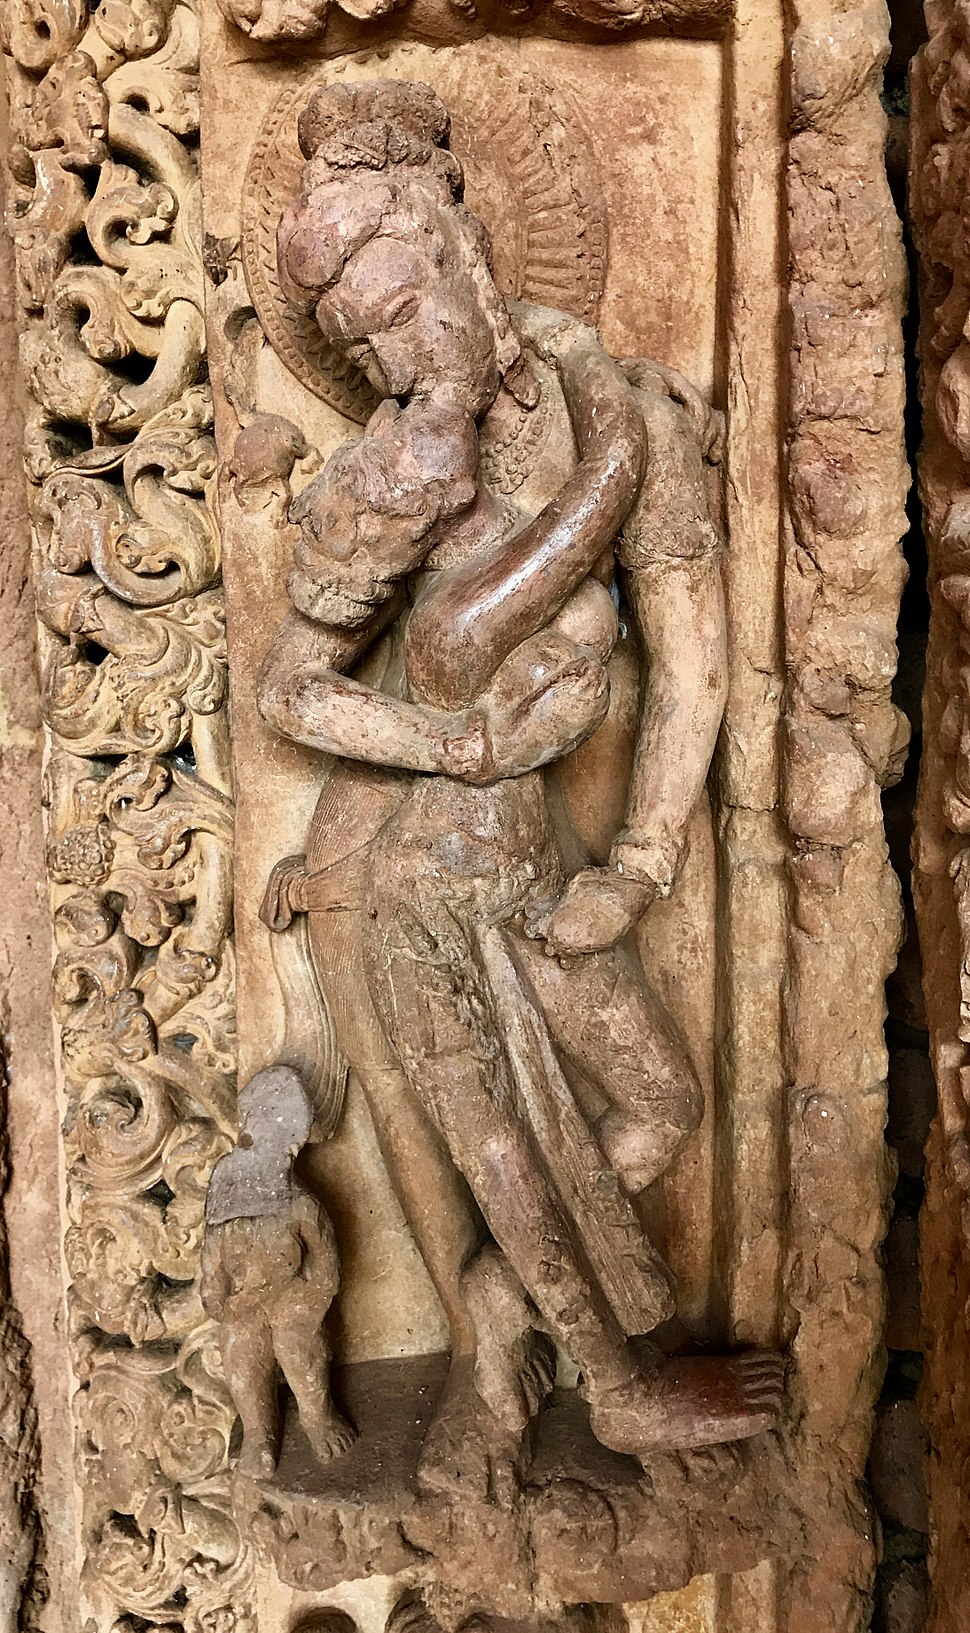 8th century couple embraced and mouth kissing at Tivara Deva temple, she stands on his feet, Sirpur monuments Chhattisgarh India